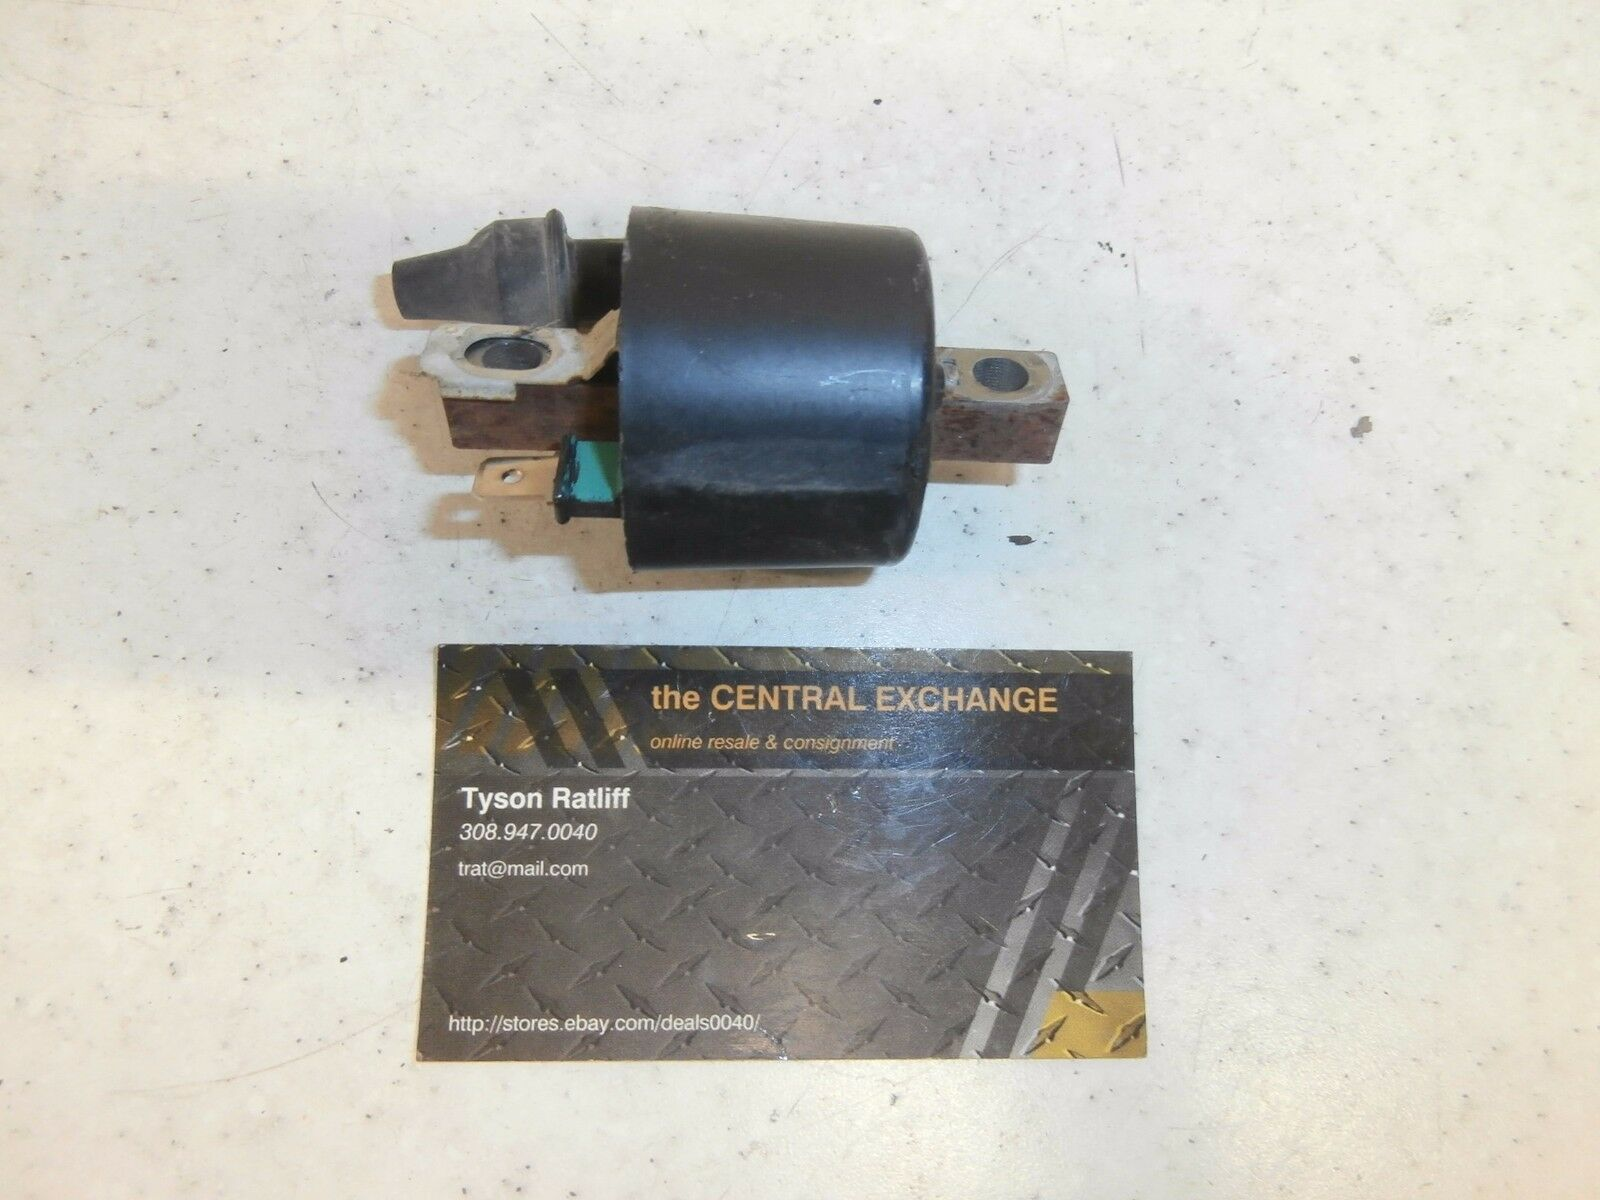 08-11 Honda Foreman 500 TRX500 4X4 Genuine Ignition Spark Plug Coil Pack Box OEM